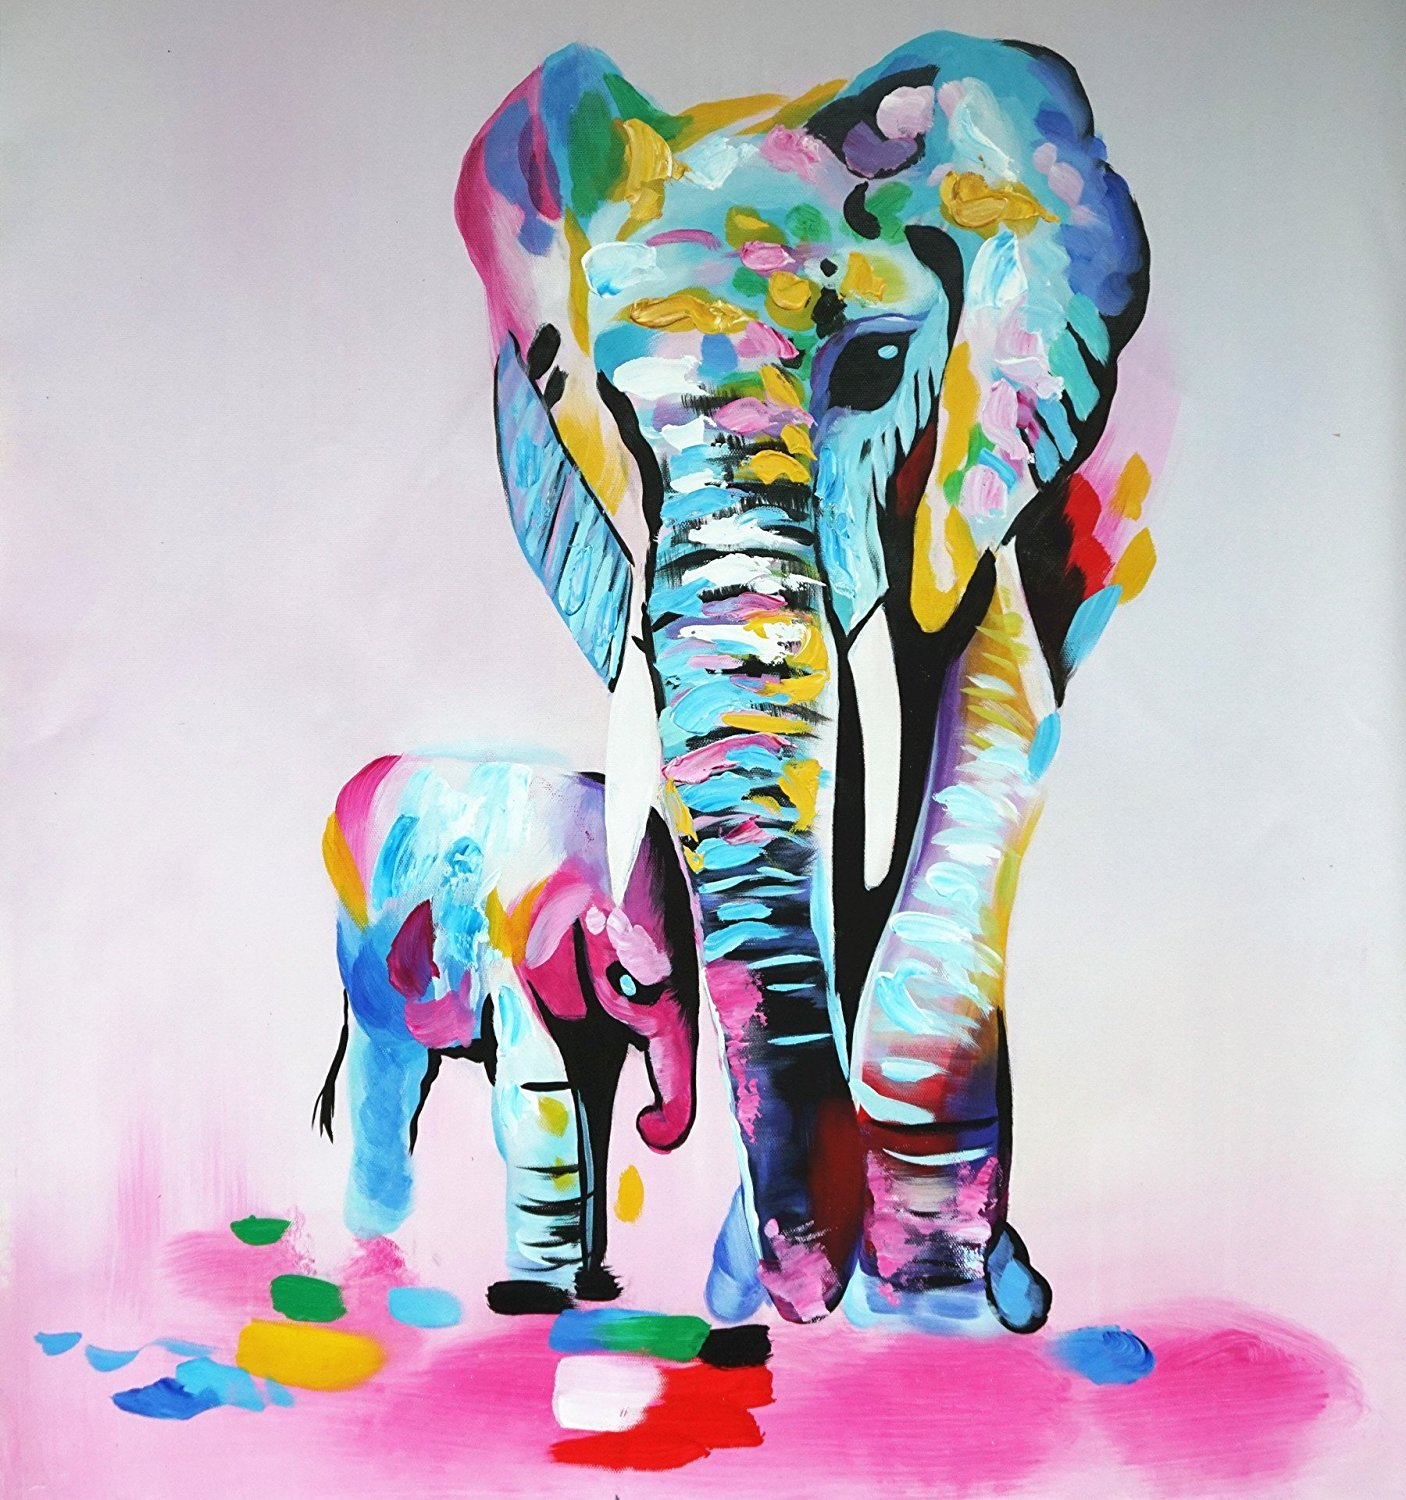 Oil Painting Elephant Hand Painted Animal Pictures ''Mother Love'' Modern Home Decor Wall Art Canvas Painting For Home Office 20x20inch (50x50cm)